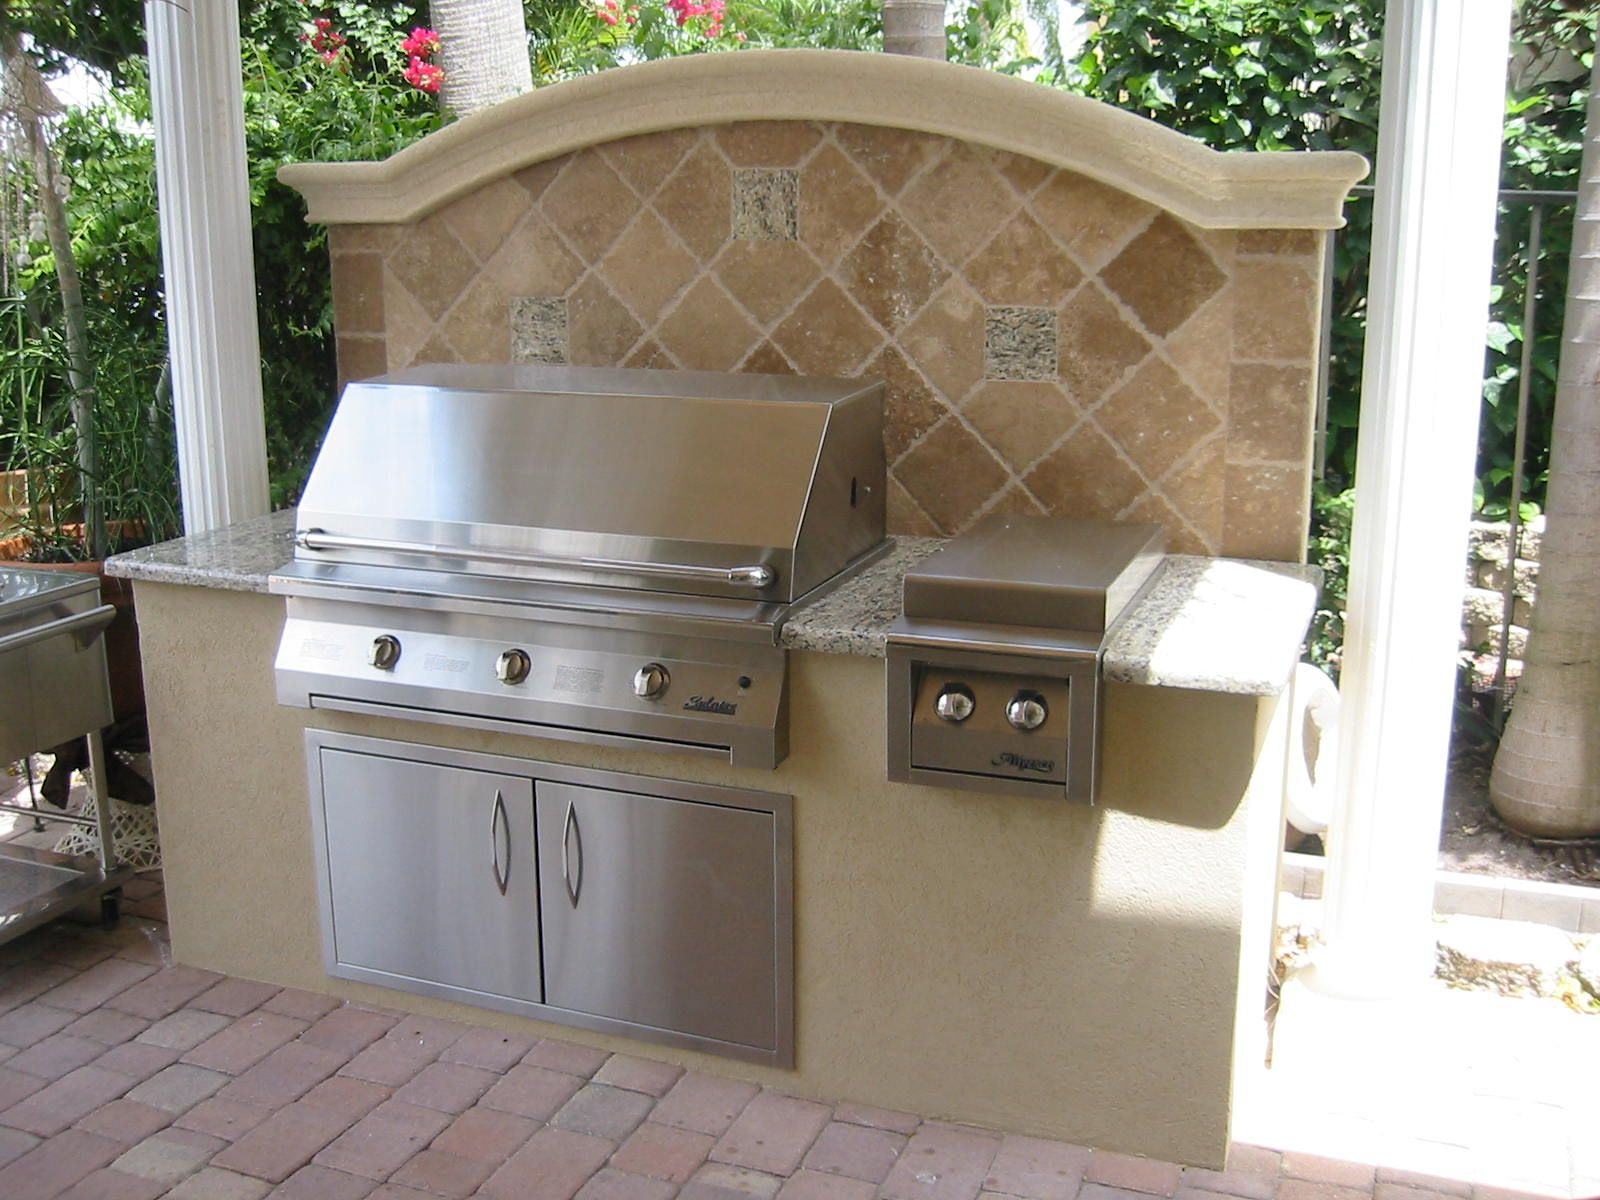 ideas outdoor ideas outdoor spaces outdoor living bbq ideas bbq grill